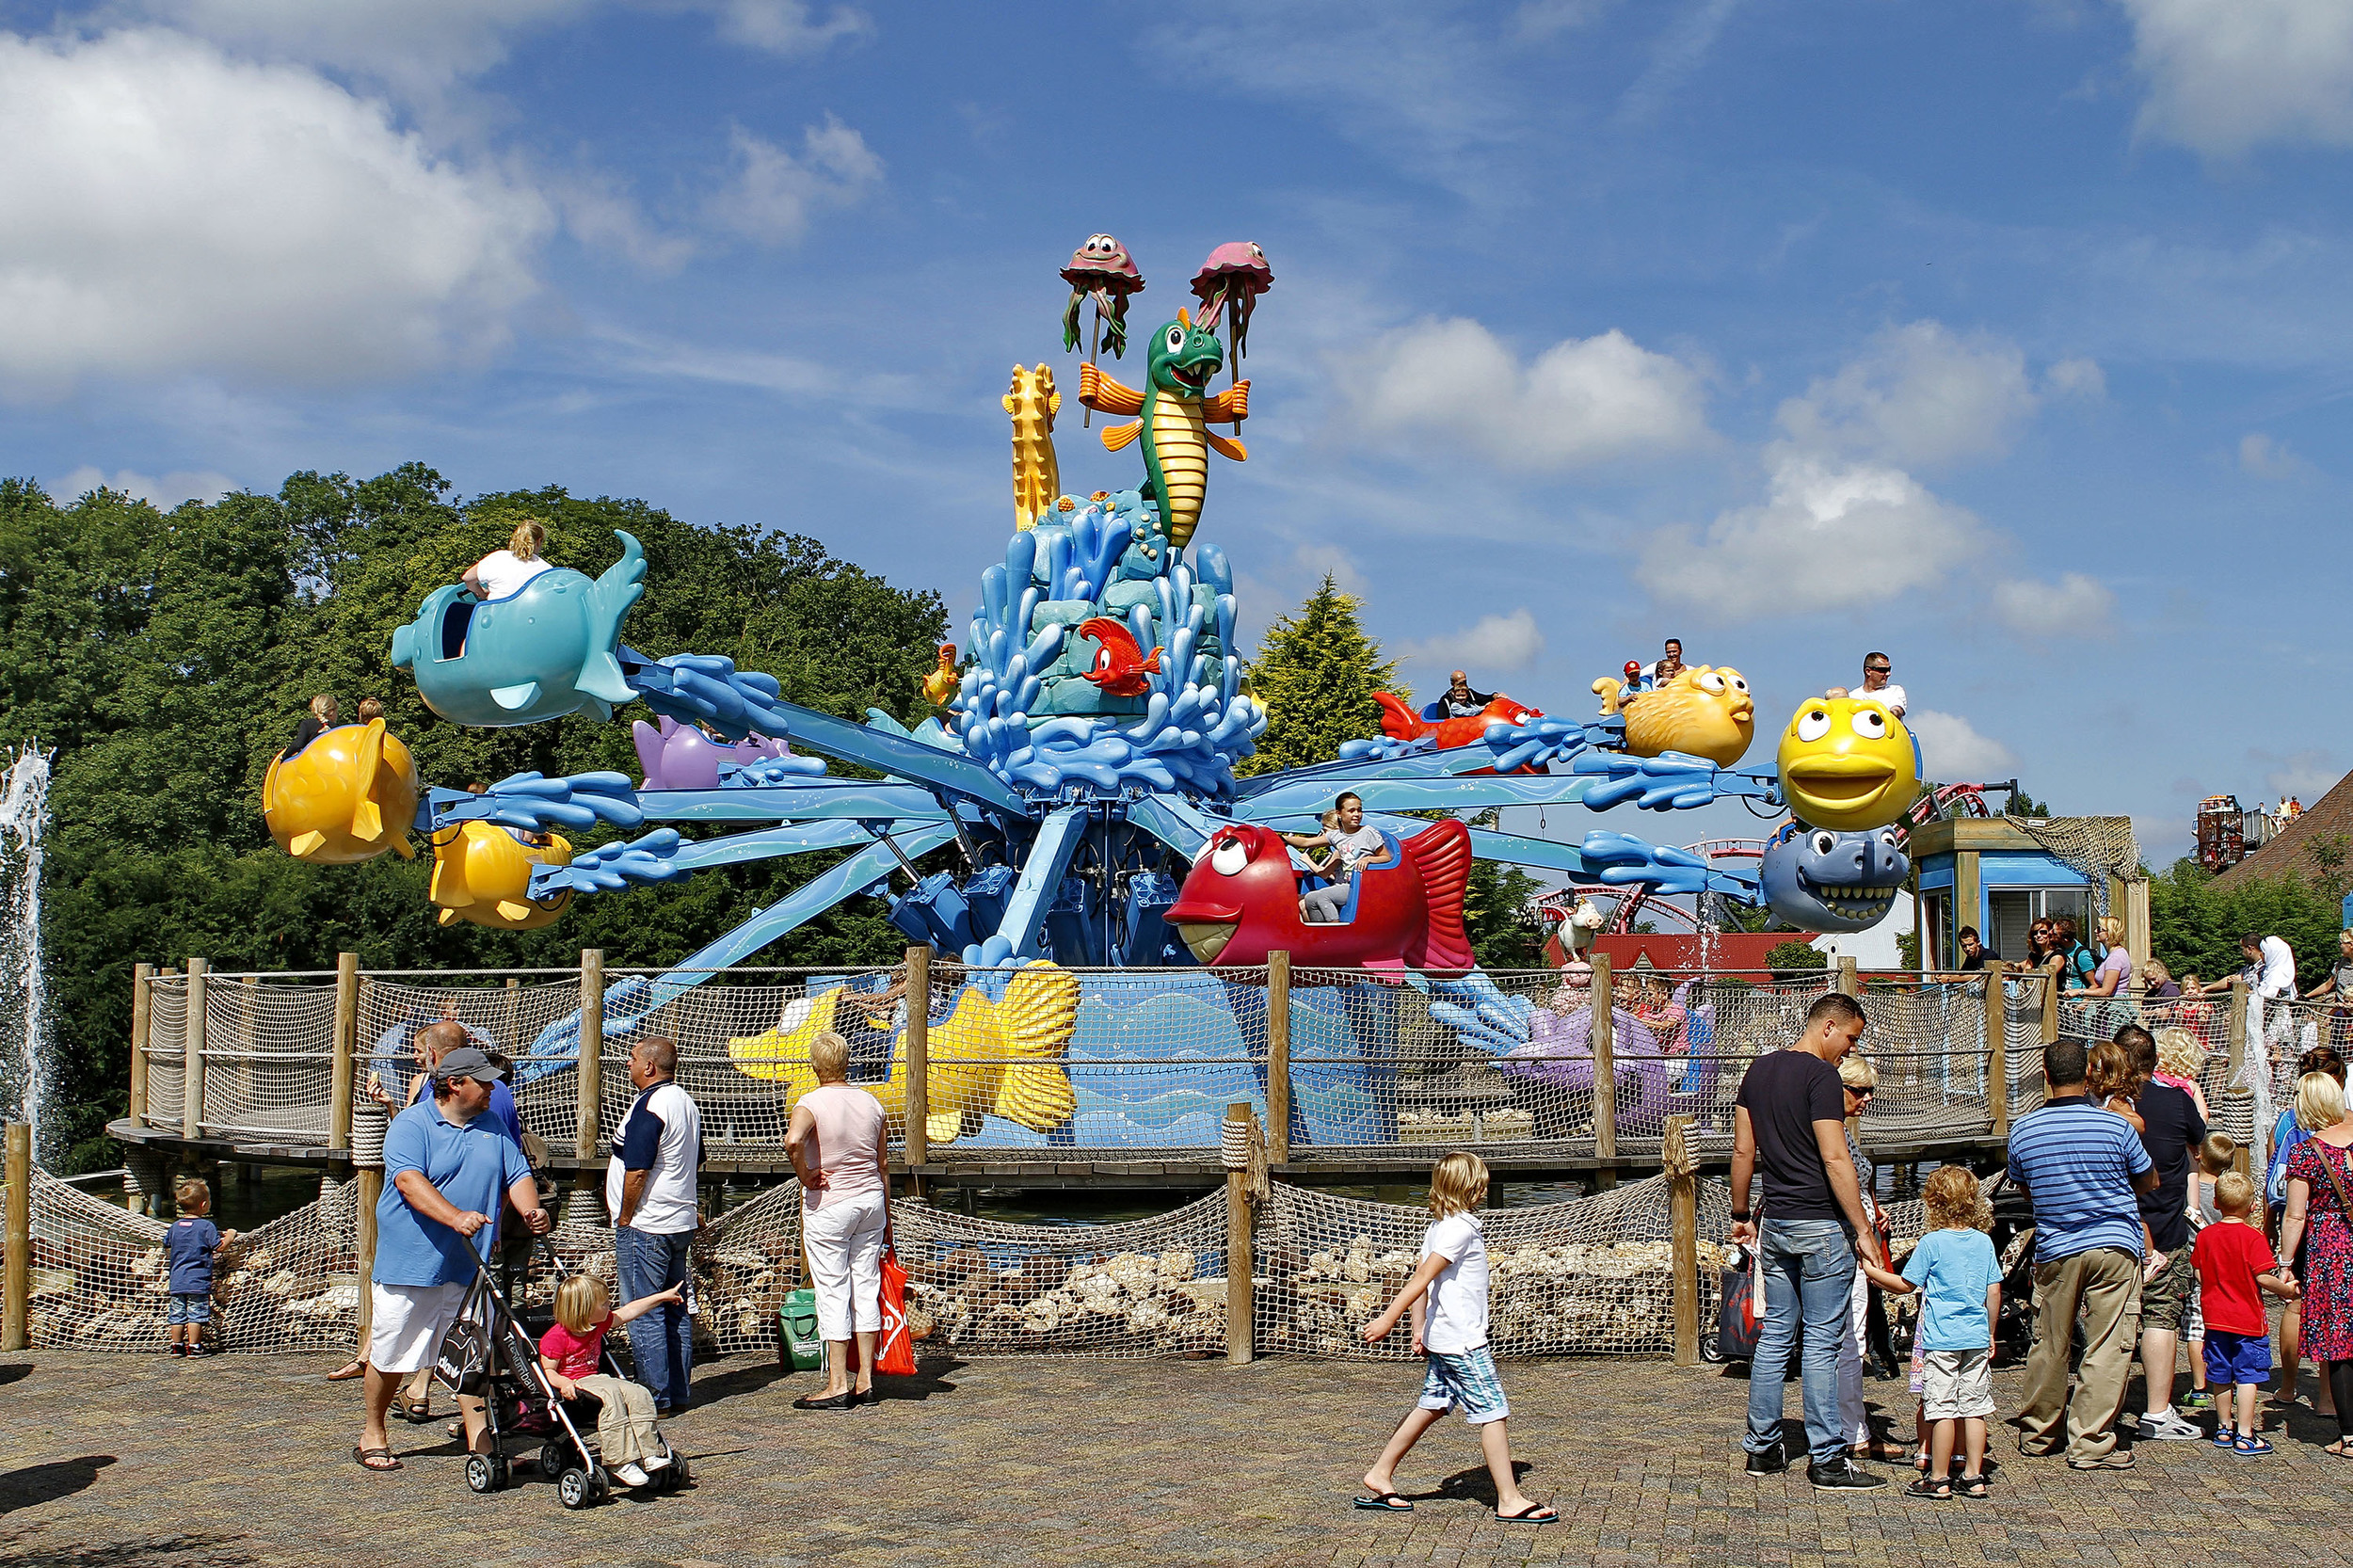 FLYING FISH <strong>| A classic flying carousel in Drievliet, the Netherlands</strong>